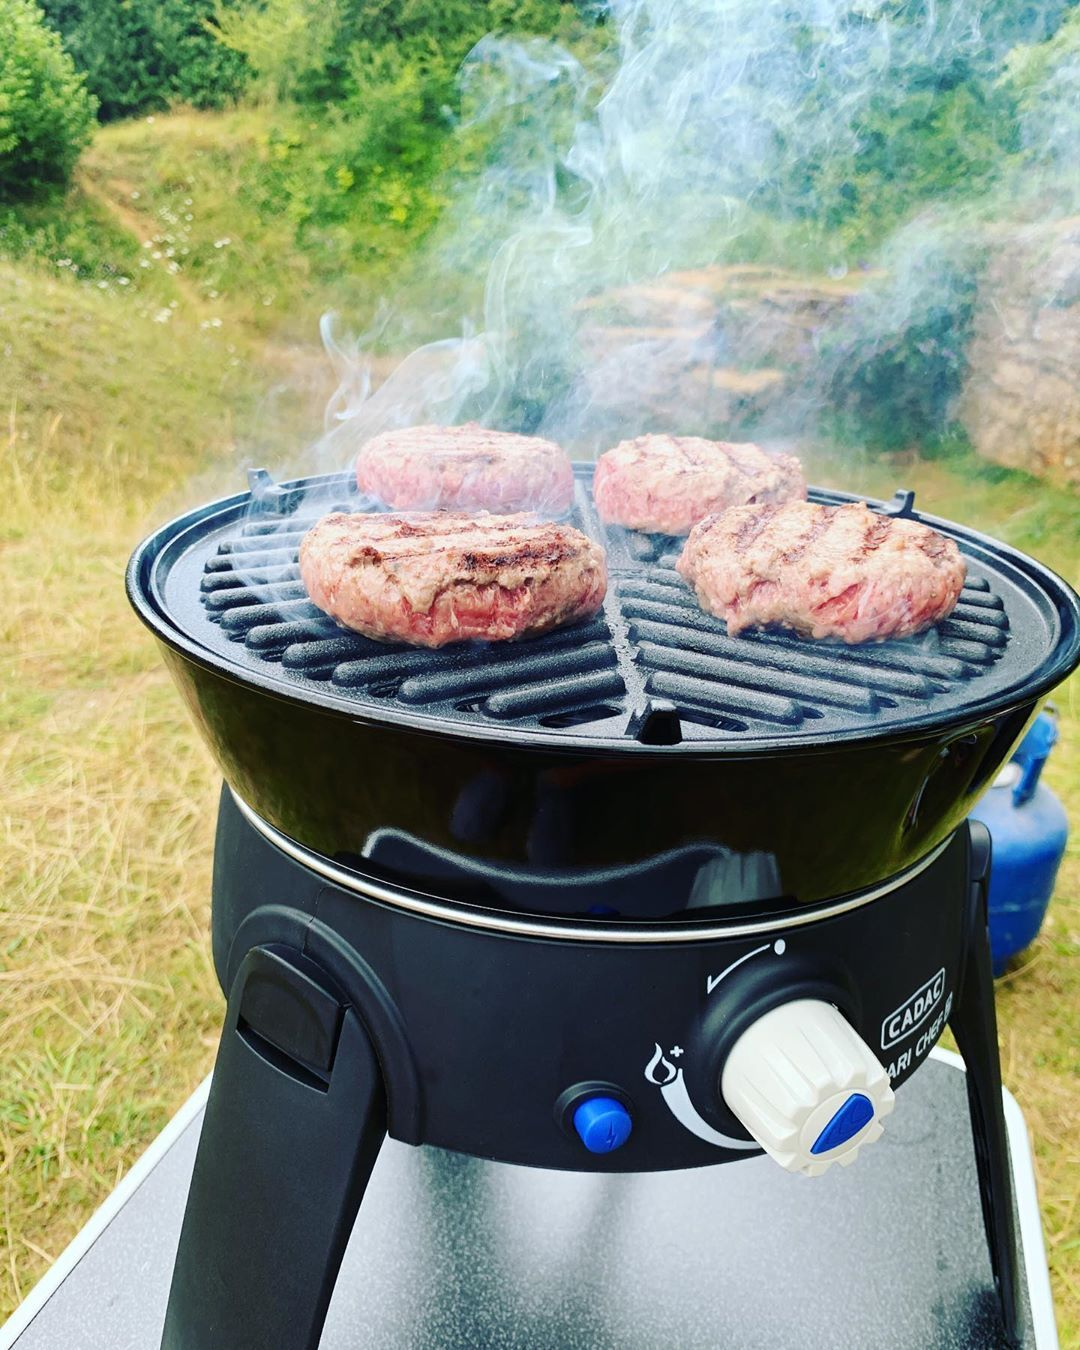 Tried Out Our Cadacuk Safari Chef 2 For The First Time This Week Cracking Bit Of Kit Cadac Cadacsafarichef Cadacsaf First Time Van Life Car Review